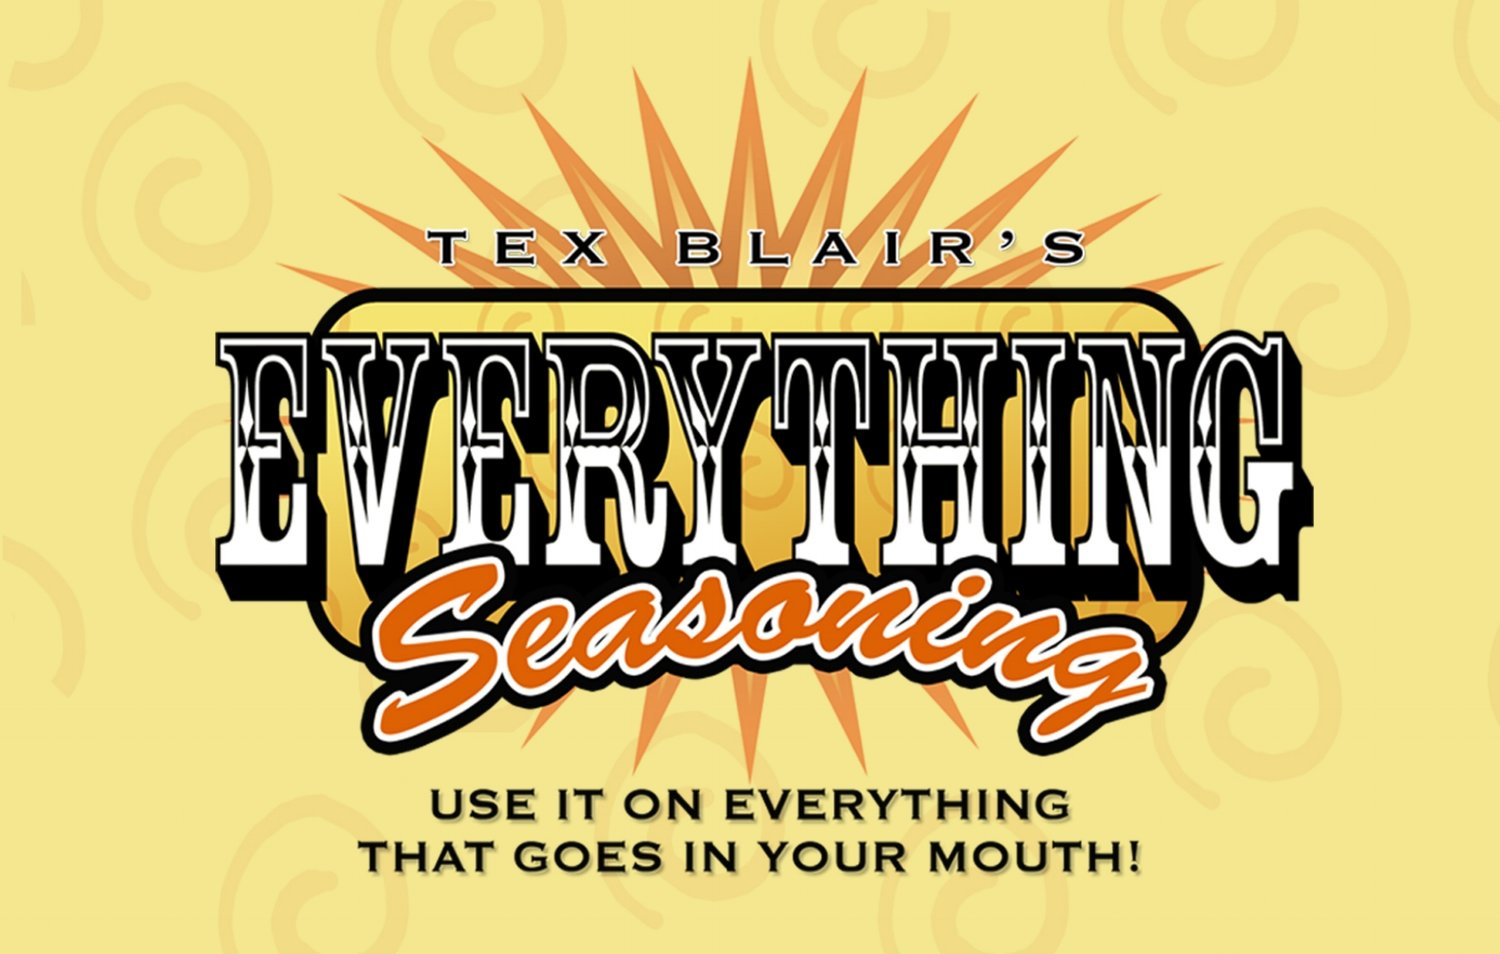 Tex Blair's Everything Seasoning